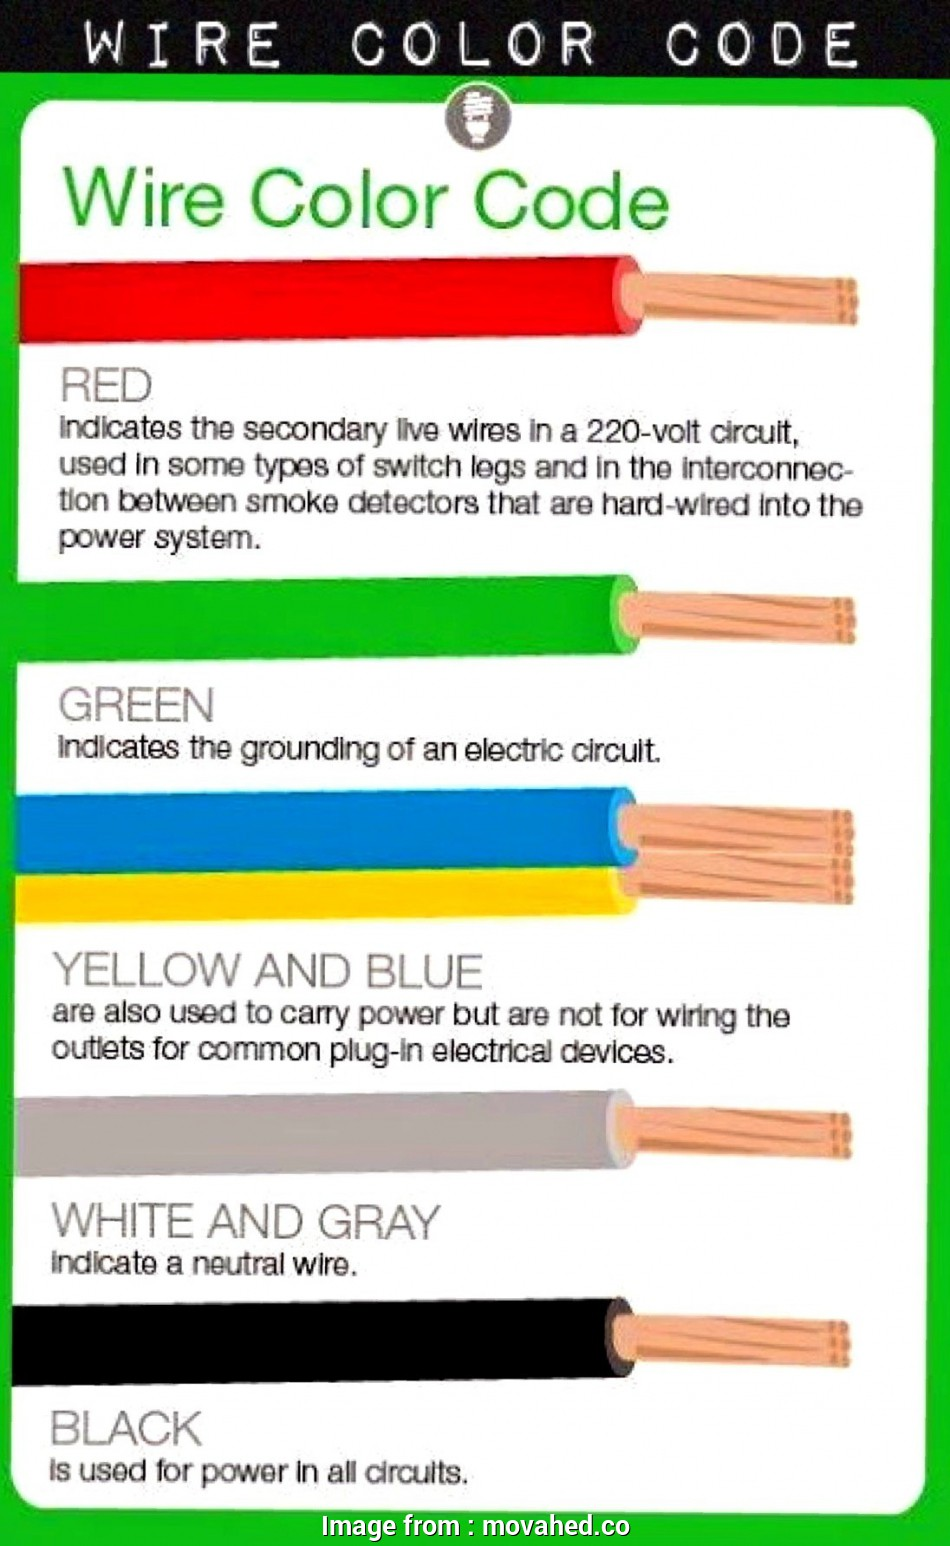 electrical wire colors red black green Color Code Electrical, Color Code Electrical Wiring Save Symbols astonishing What 15 Simple Electrical Wire Colors, Black Green Photos